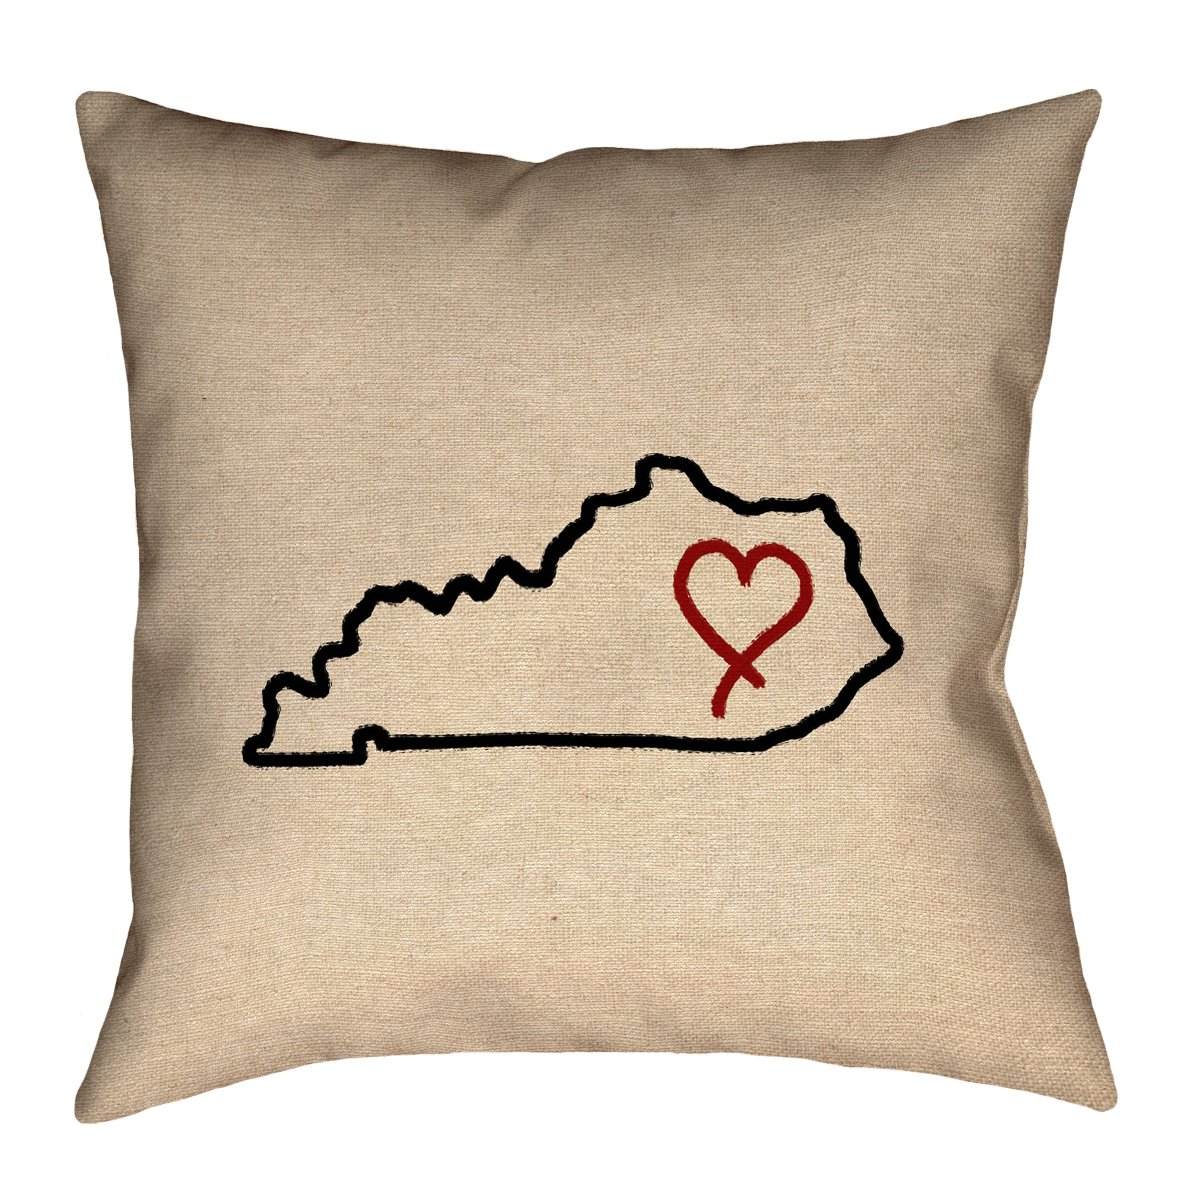 ArtVerse Katelyn Smith 26 x 26 Faux Suede Double Sided Print with Concealed Zipper /& Insert Kentucky Love Pillow